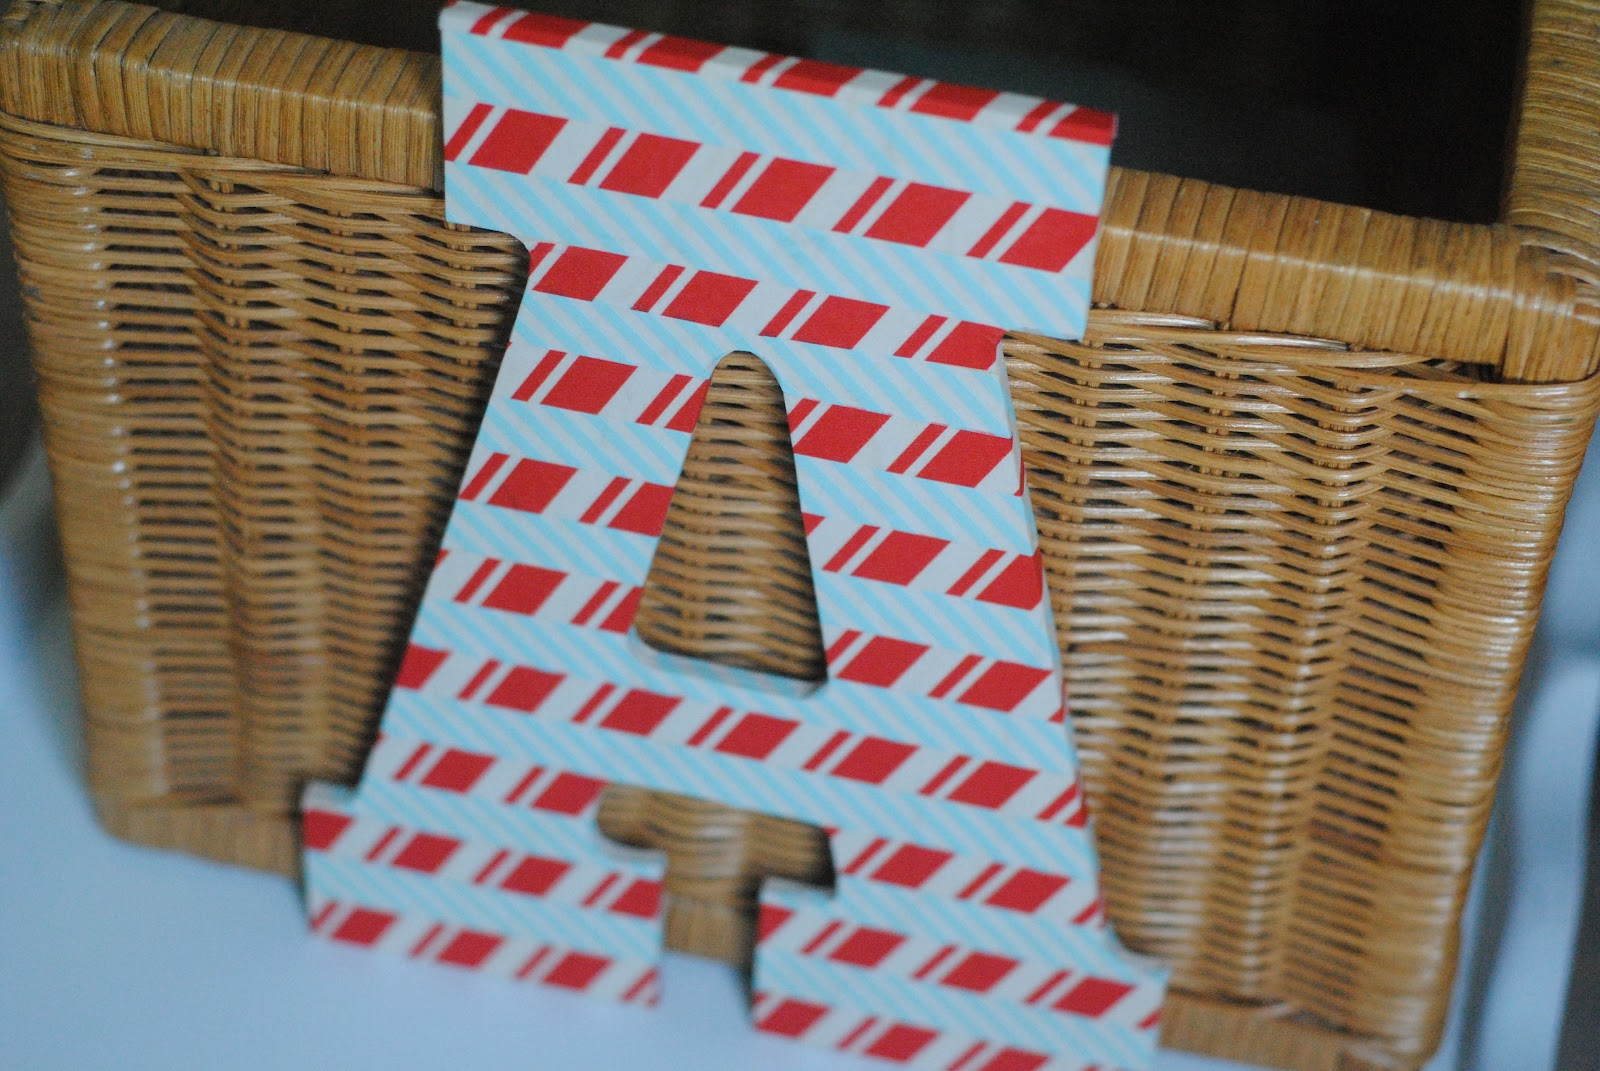 Wooden letters for crafts - Diy Washi Tape Letters Kids Craft Idea